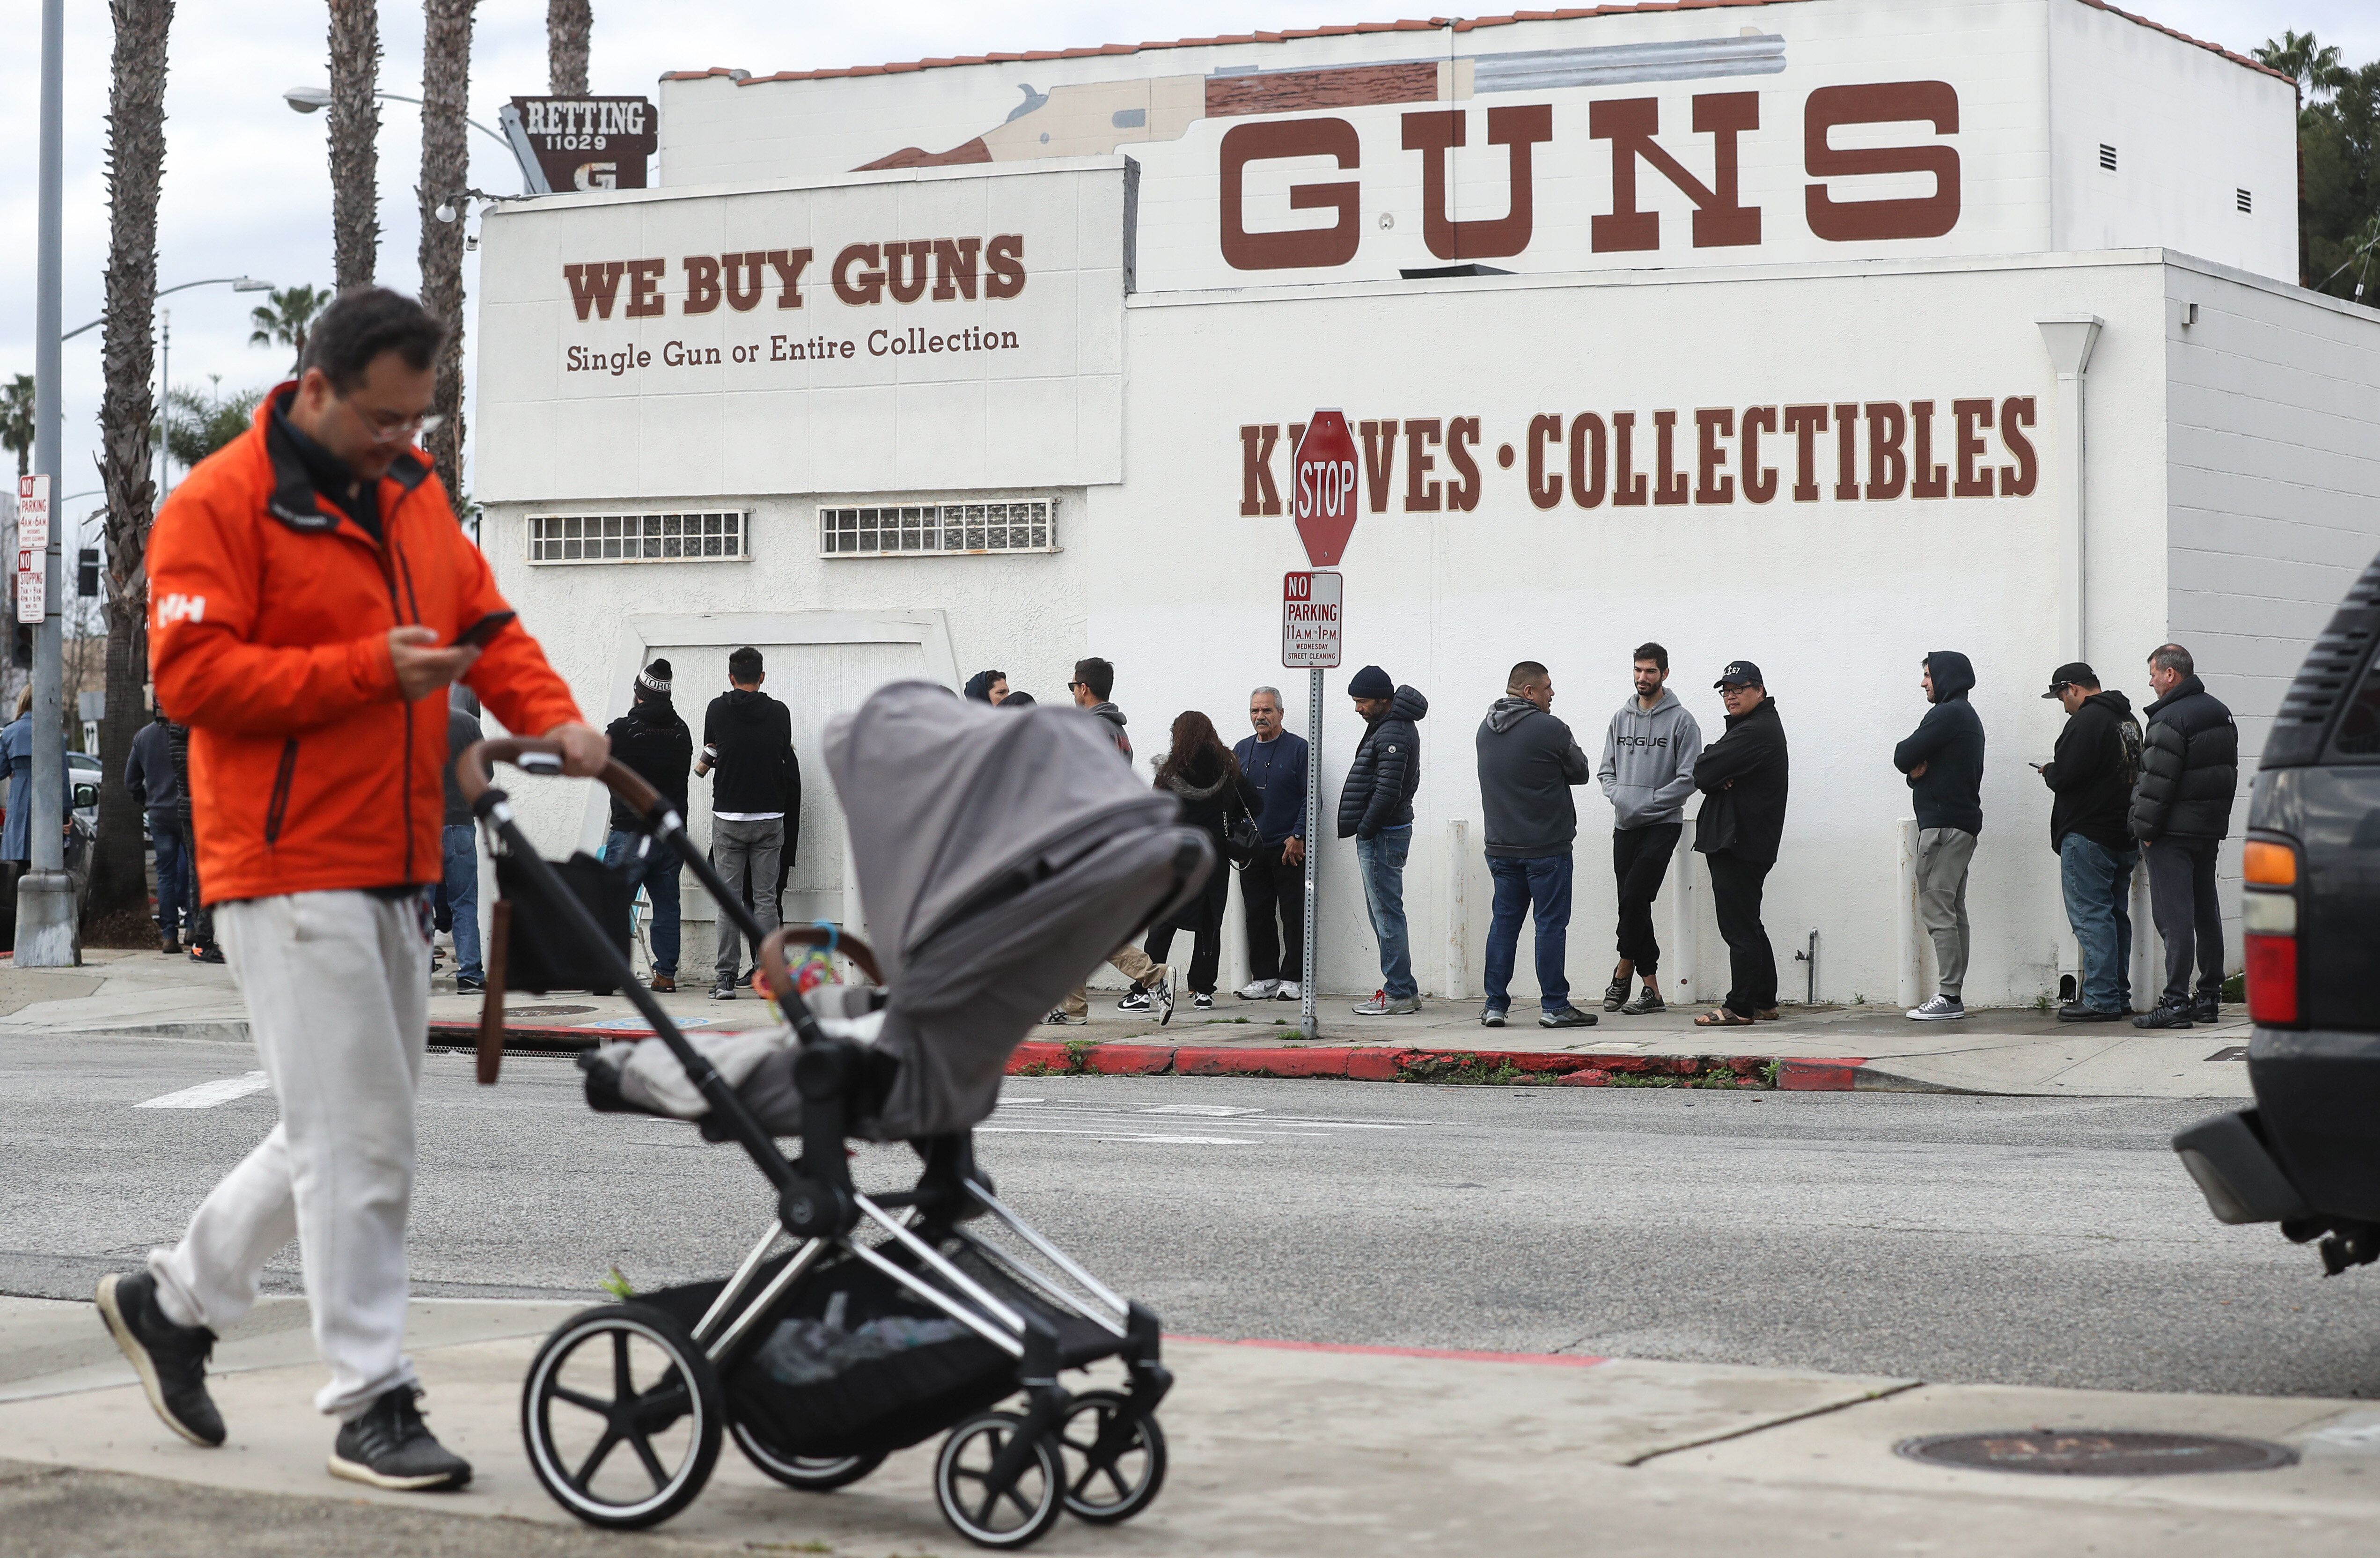 People stand in line outside the Martin B. Retting, Inc. guns store on March 15, 2020 in Culver City, California.